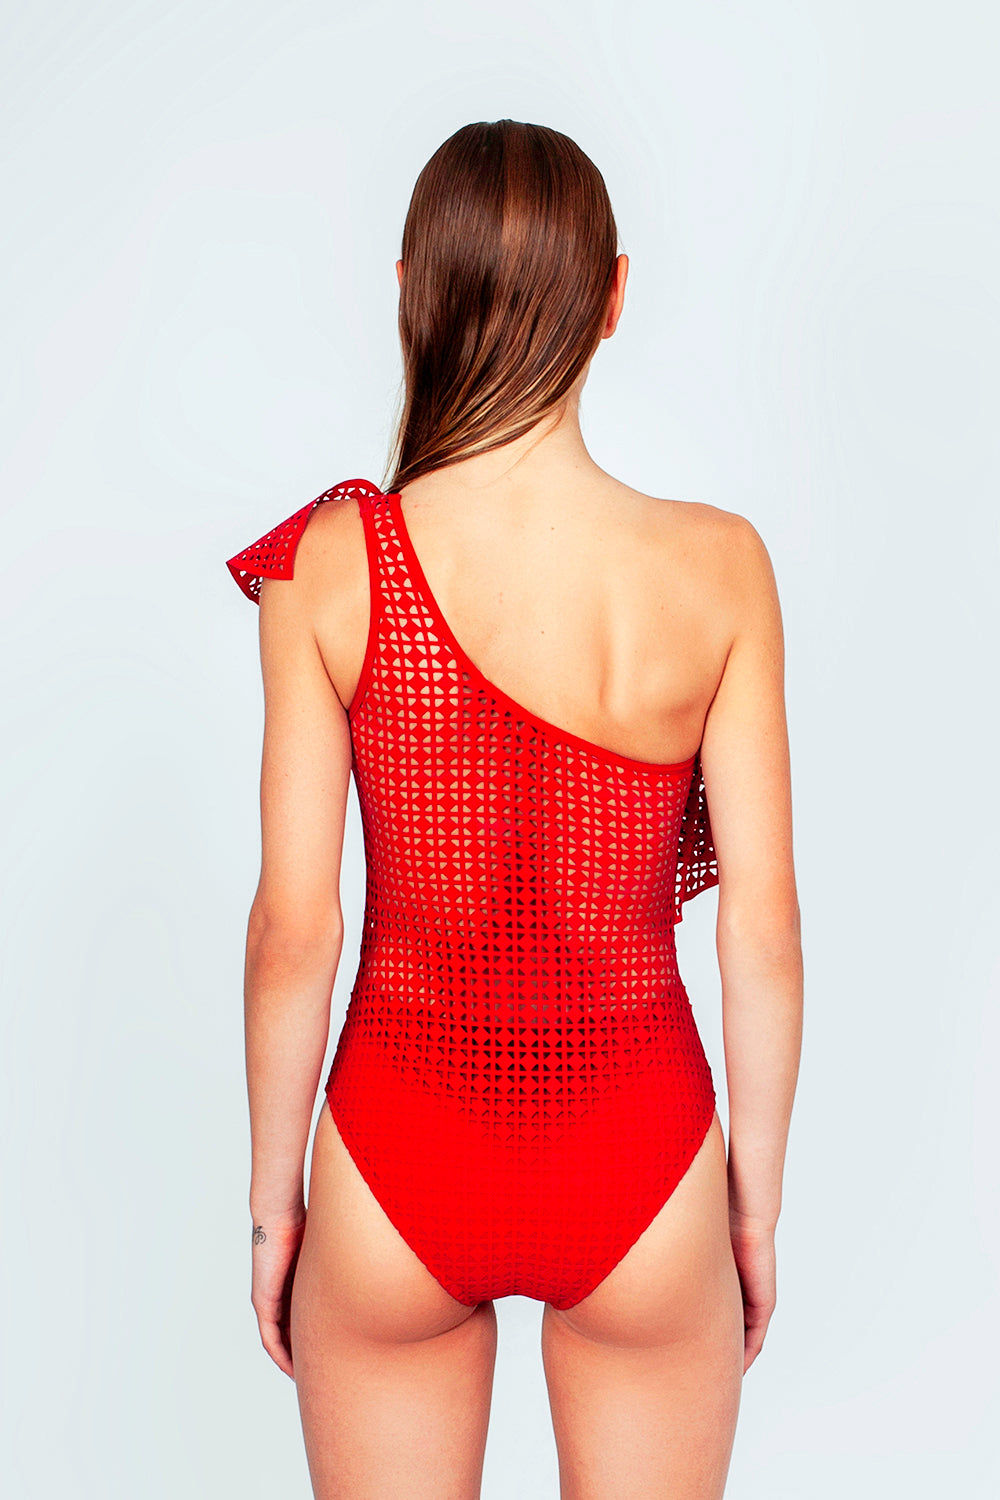 EVARAE Irene One Shoulder Laser-Cut One Piece Swimsuit - Red Matte One Piece | Red Matte| Evarae Irene One Shoulder Laser One Piece Swimsuit - Red Matte. Features:  One shoulder one piece Ruffle details Cutout designs Cheeky coverage Side View